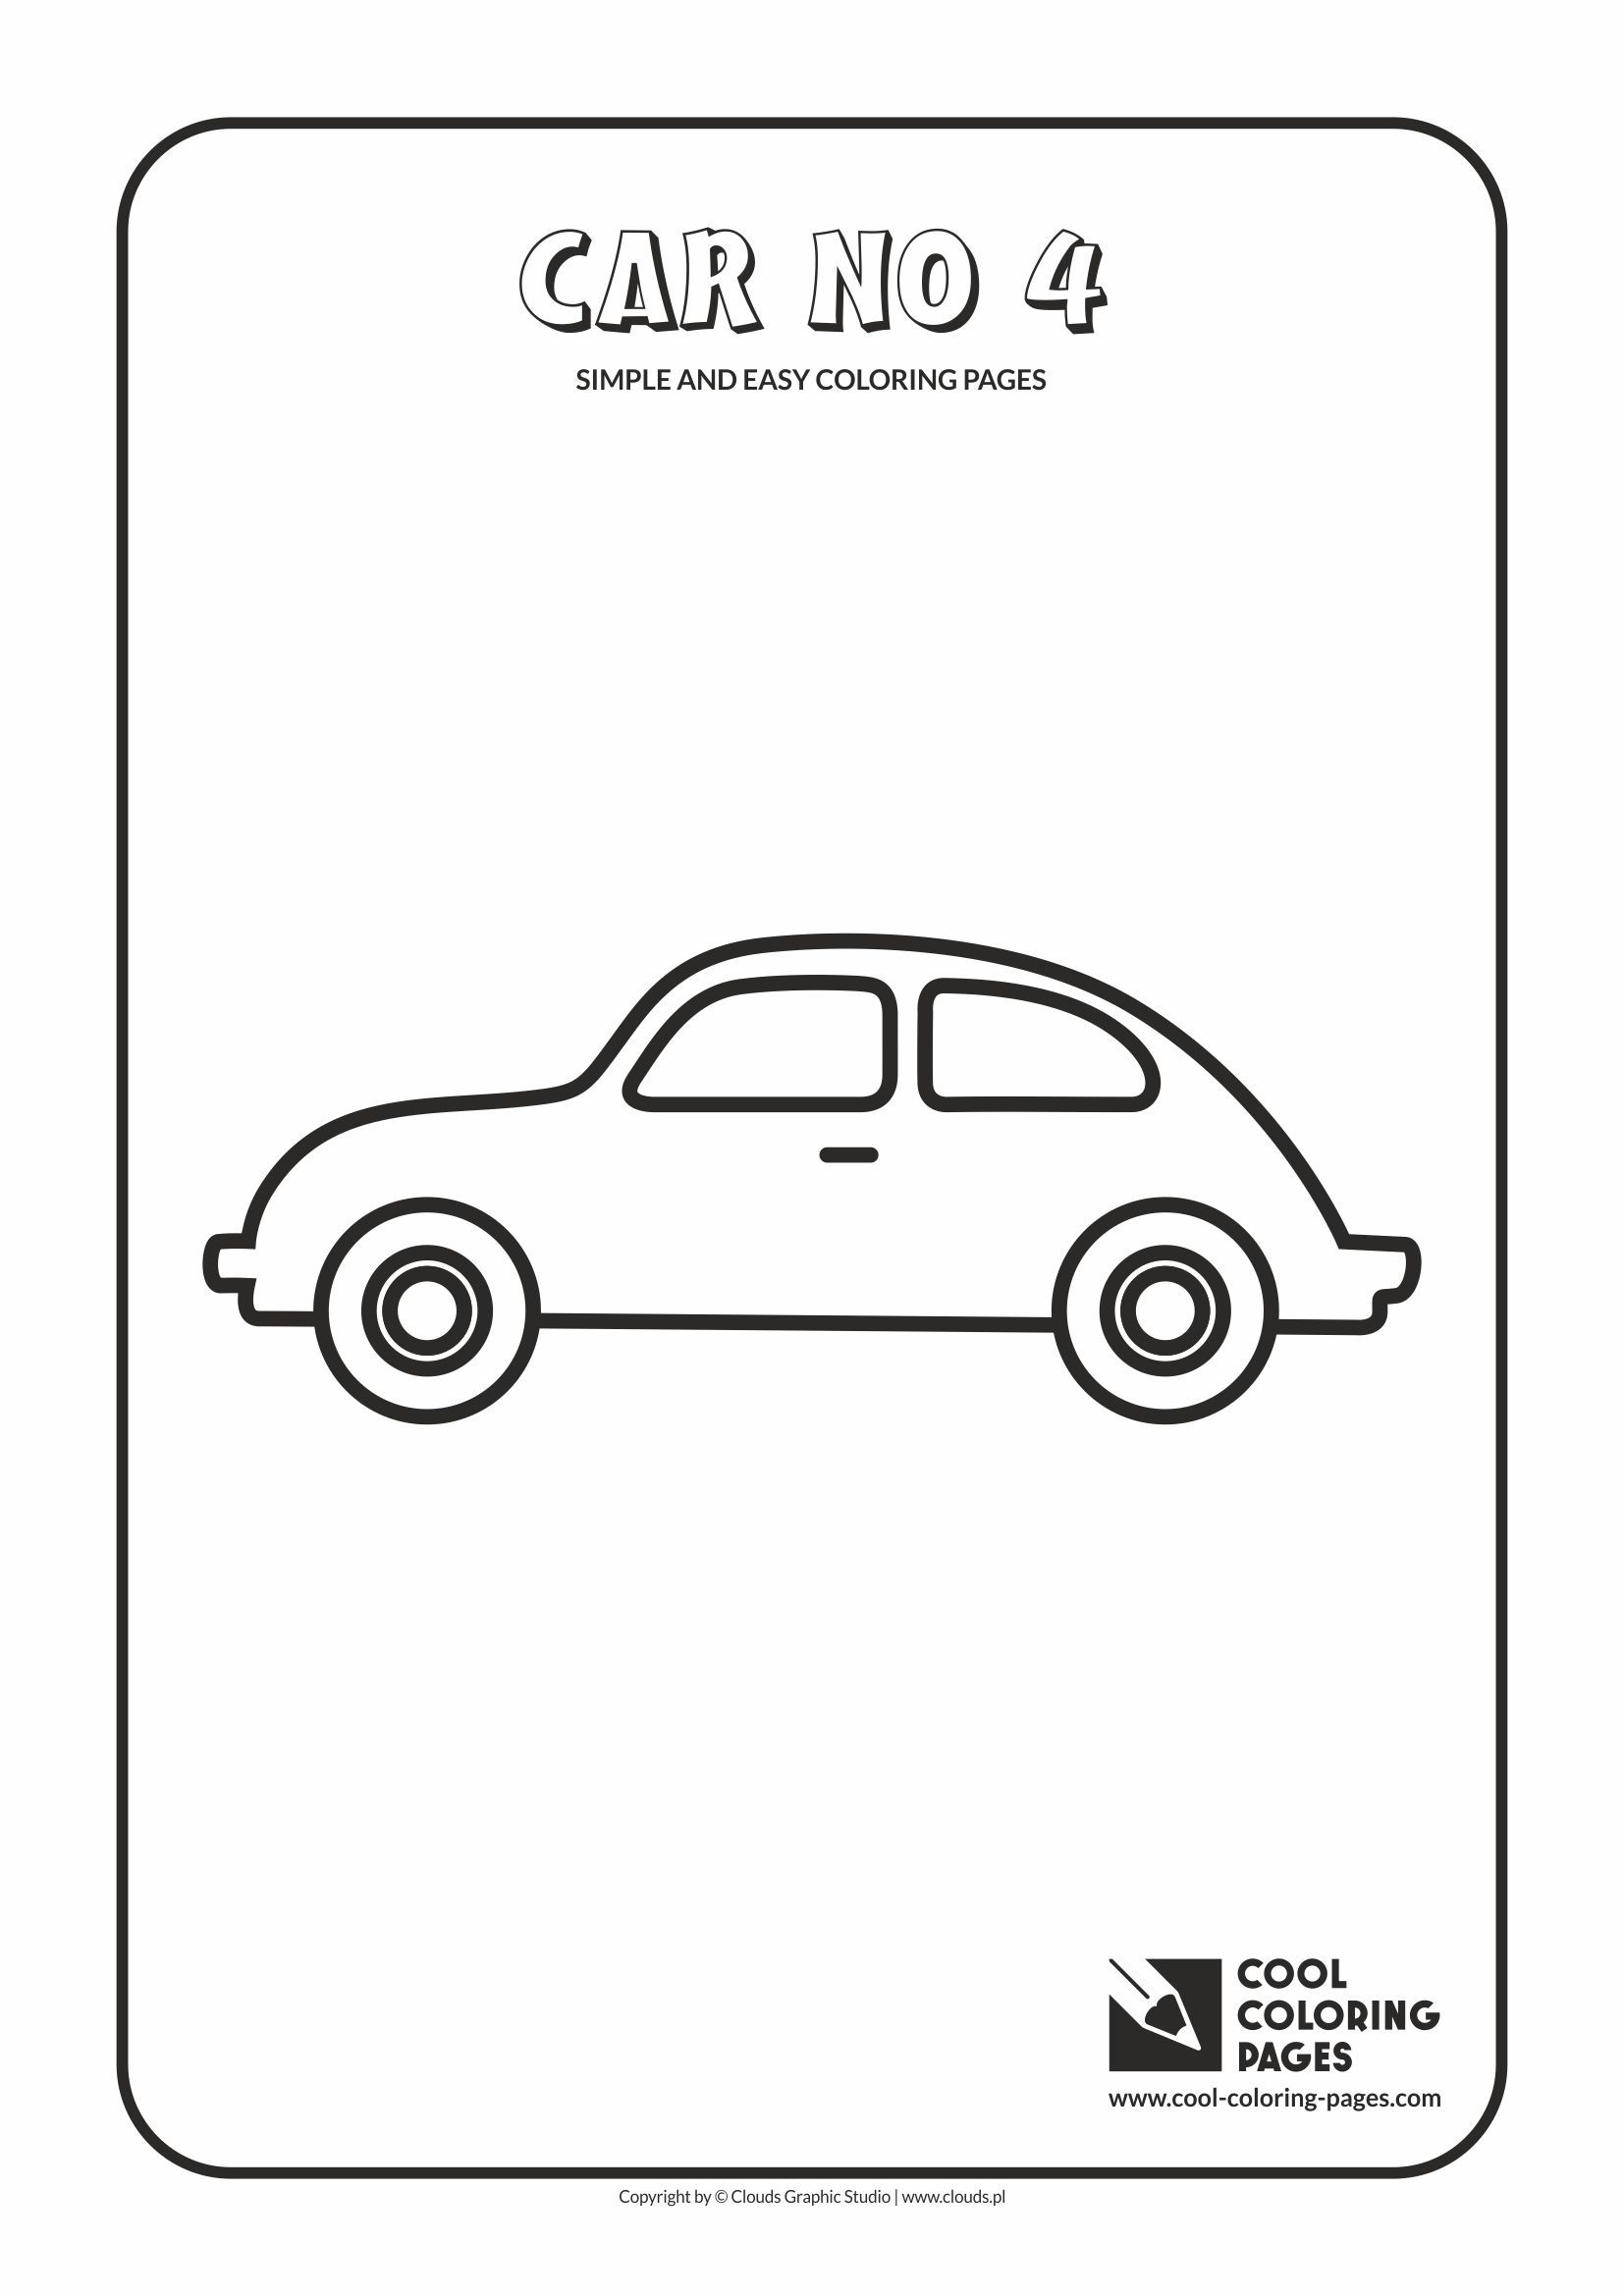 simple and easy coloring pages for toddlers car no 4